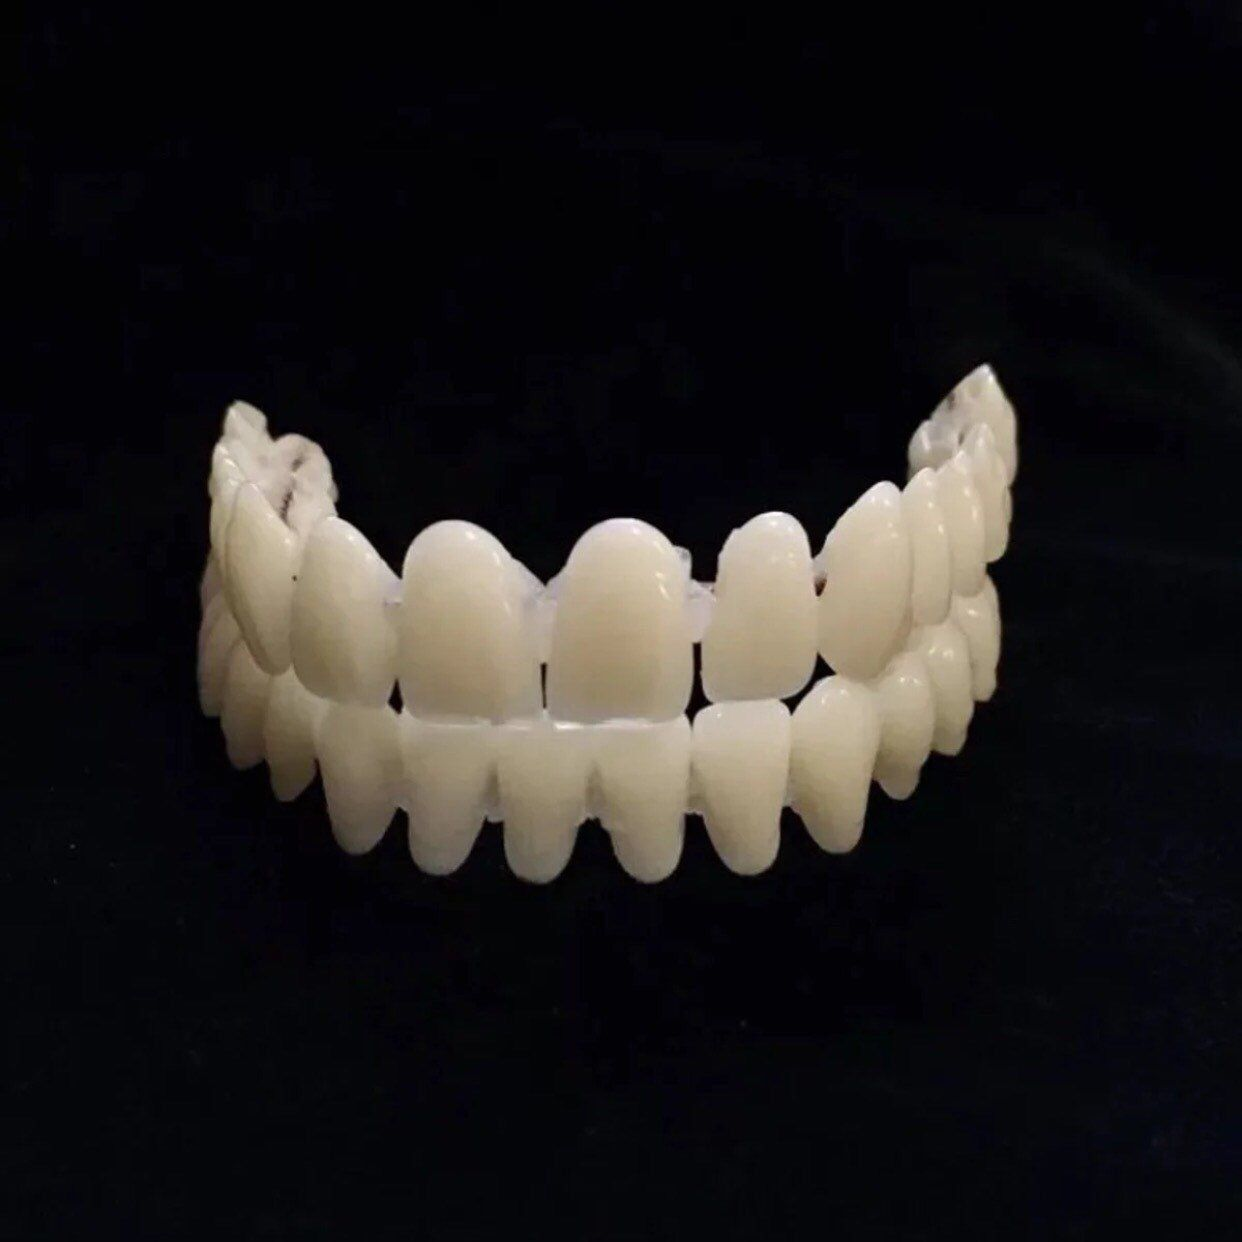 Placed Acrylic Resin Denture Teeth Full Set Upper Lower 28